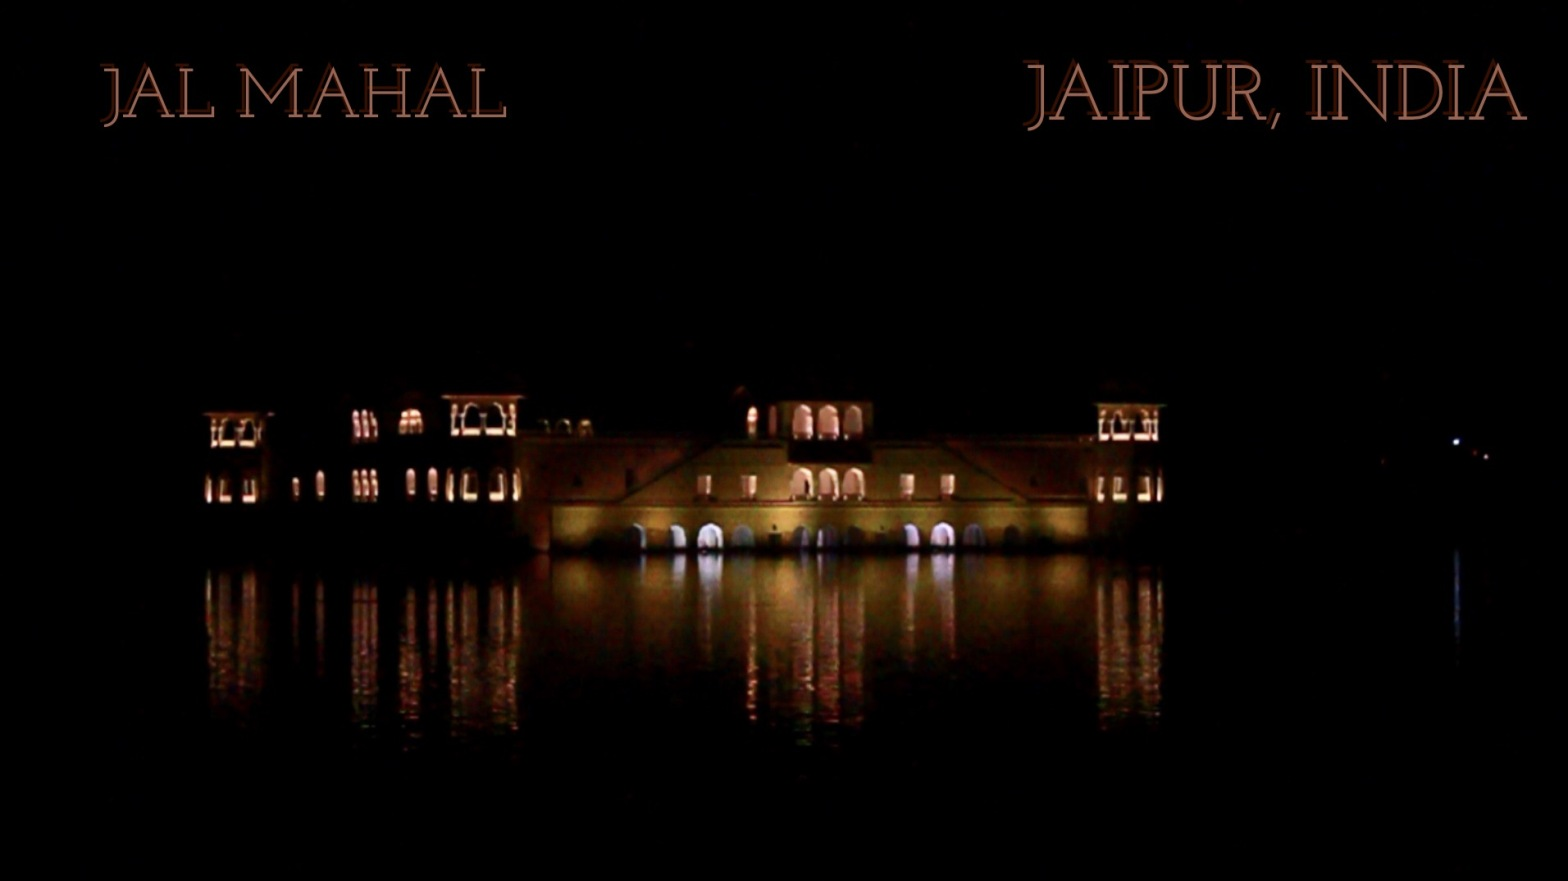 Jal Mahal in Jaipur in the night